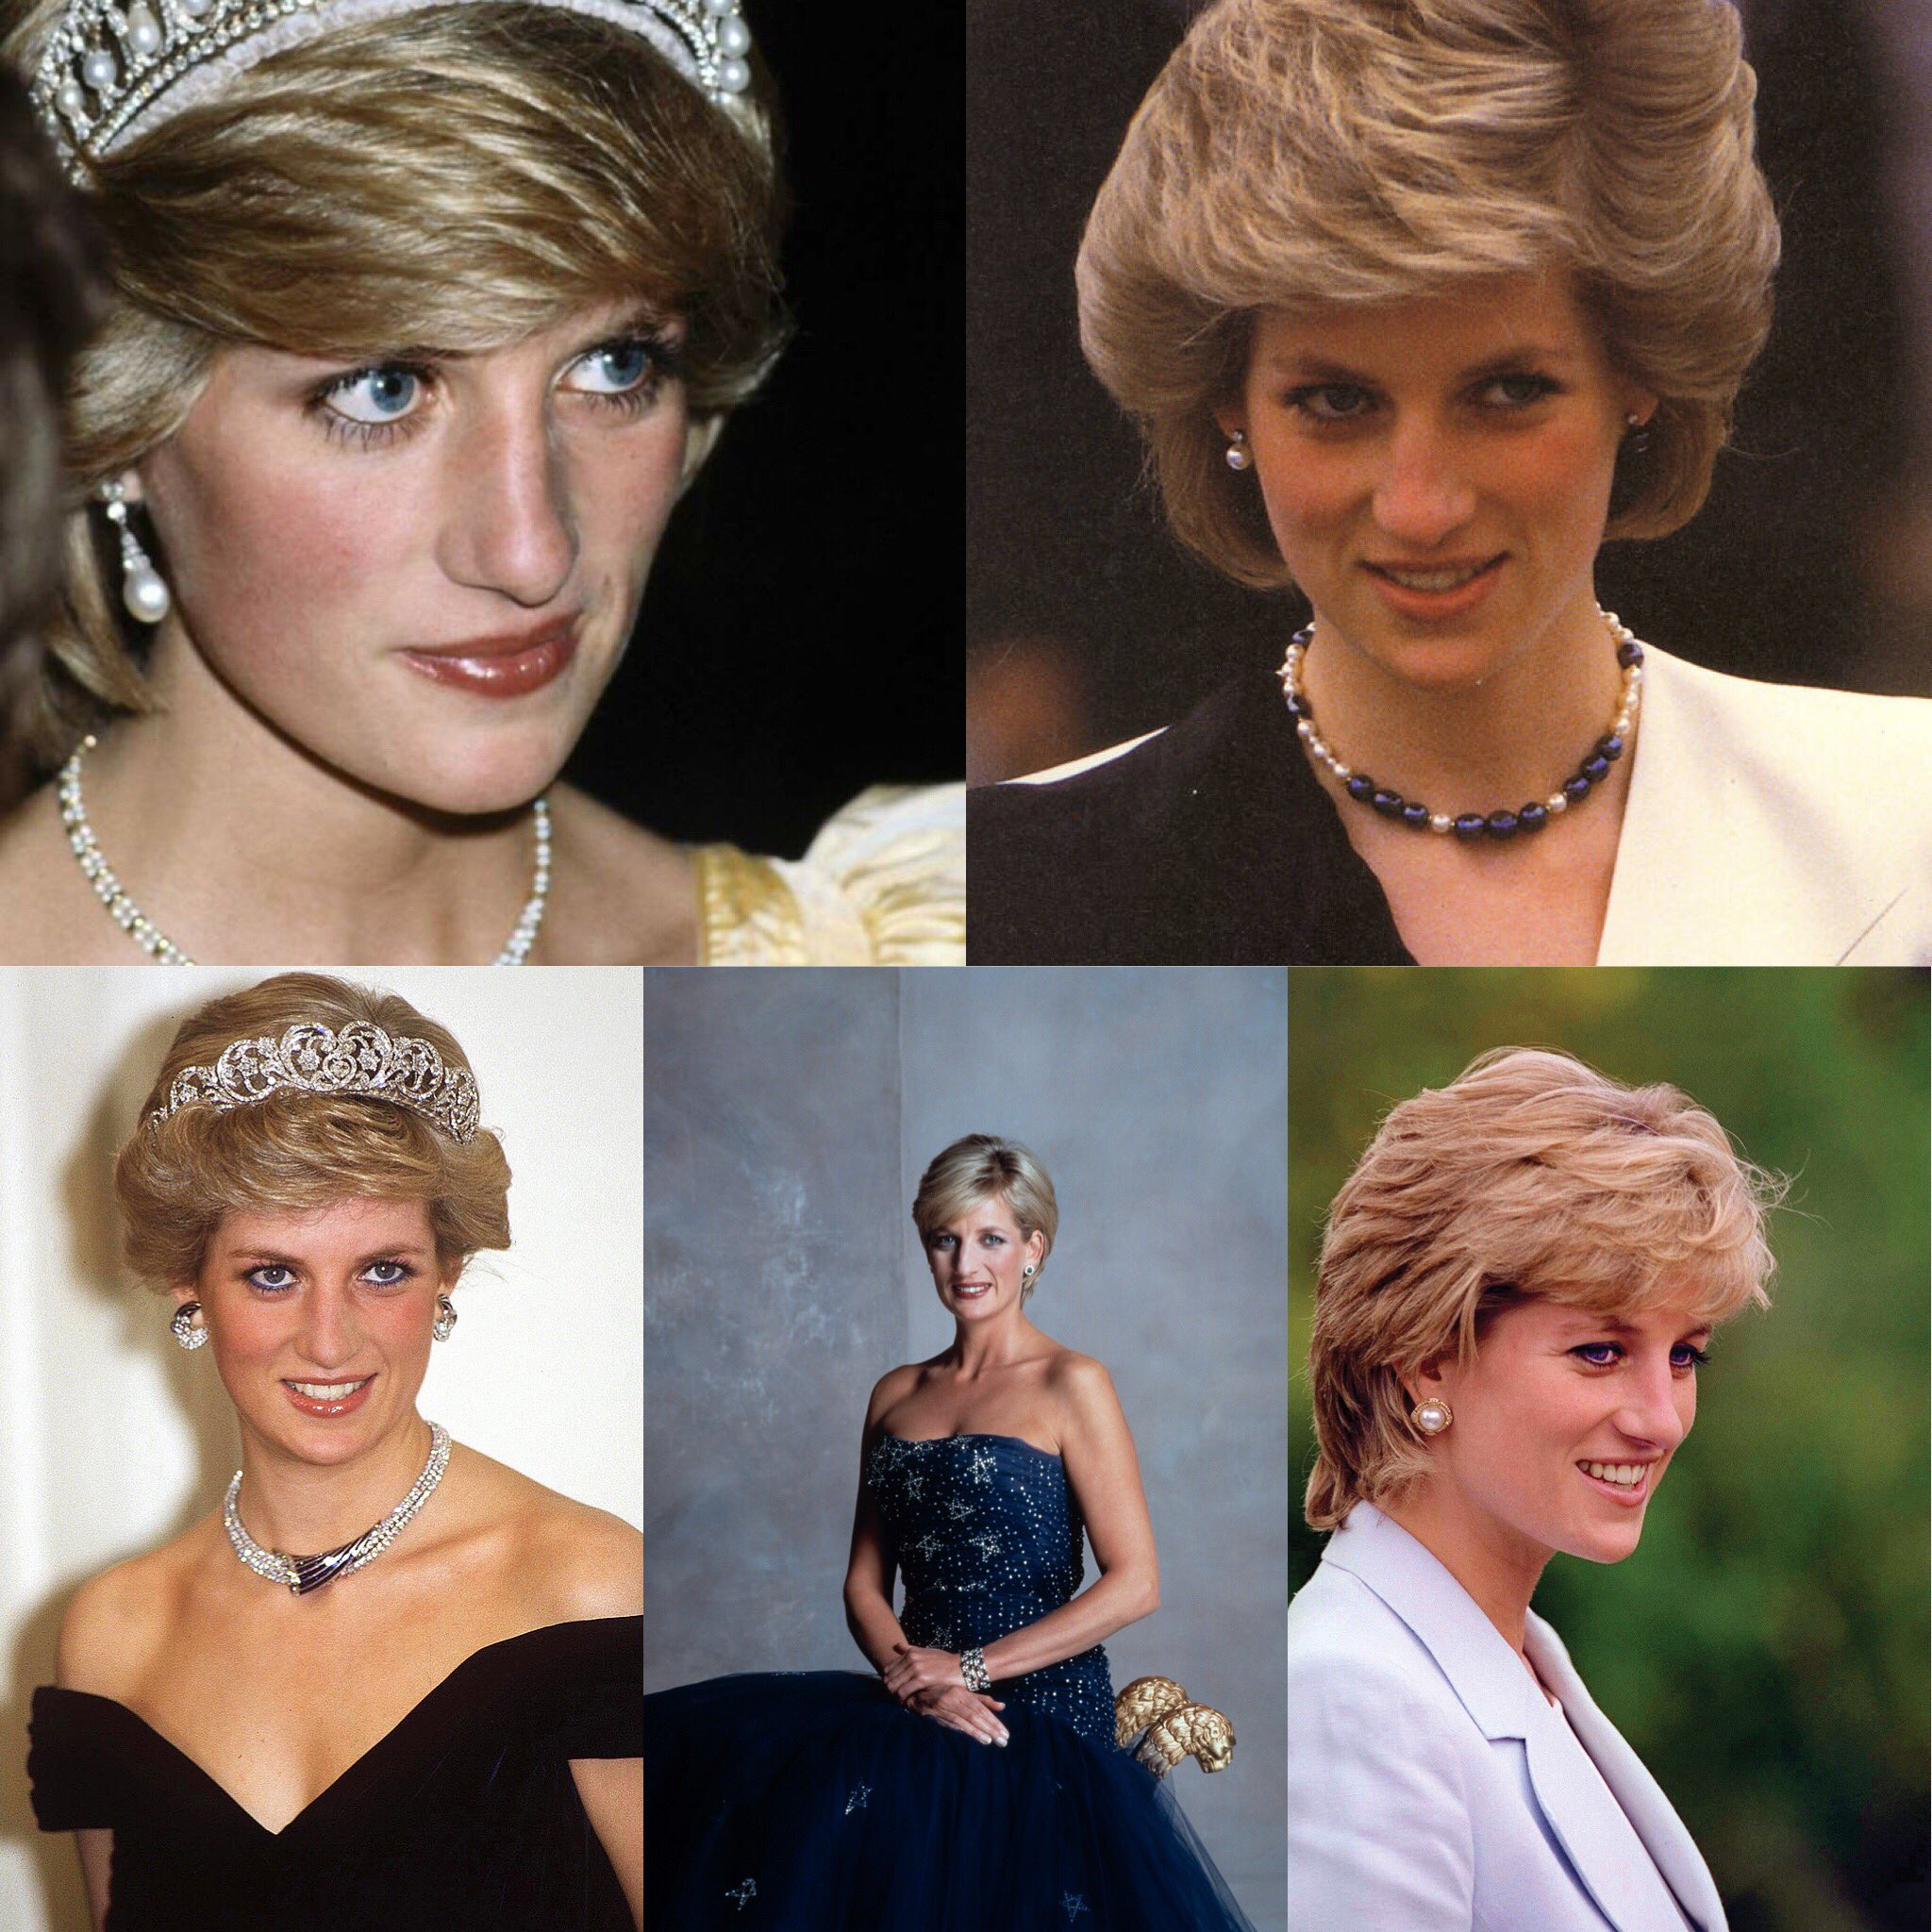 Happy 57 birthday to Princess Diana up in heaven. May she Rest In Peace. She was a wonderful person.